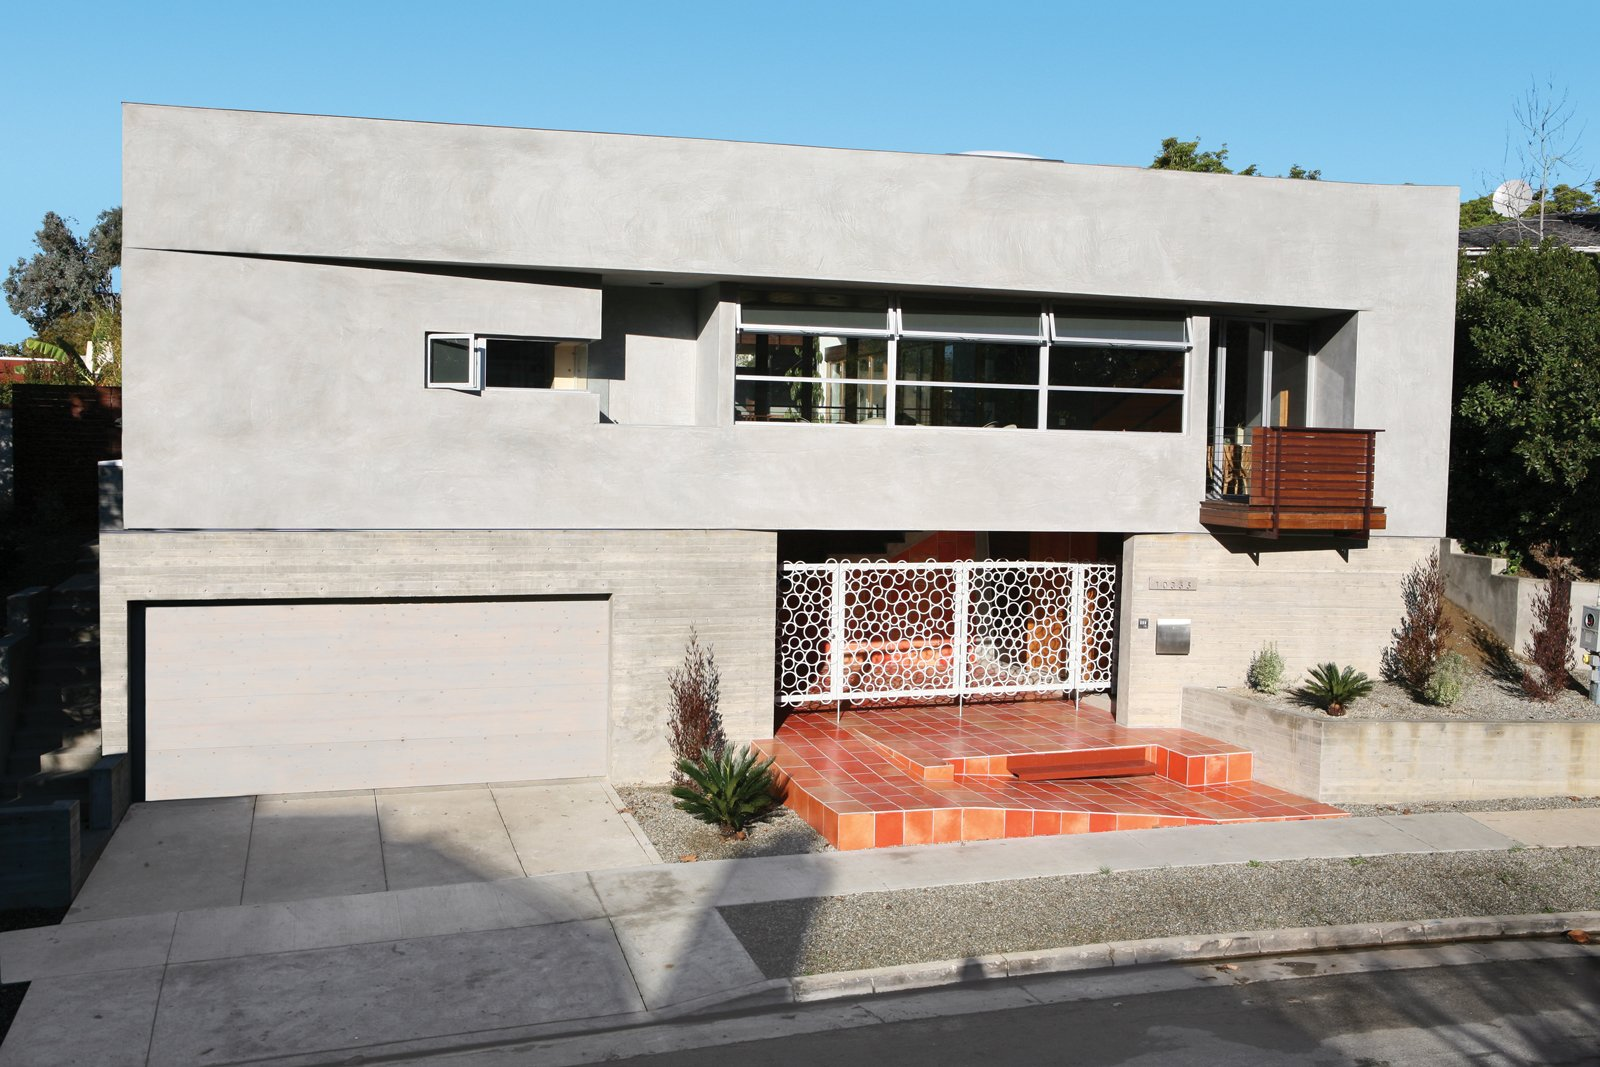 The thick stucco walls and tiled roof repels heat, and the cleverly positioned casement windows (even in closets) suck Pacific sea breezes far inland.